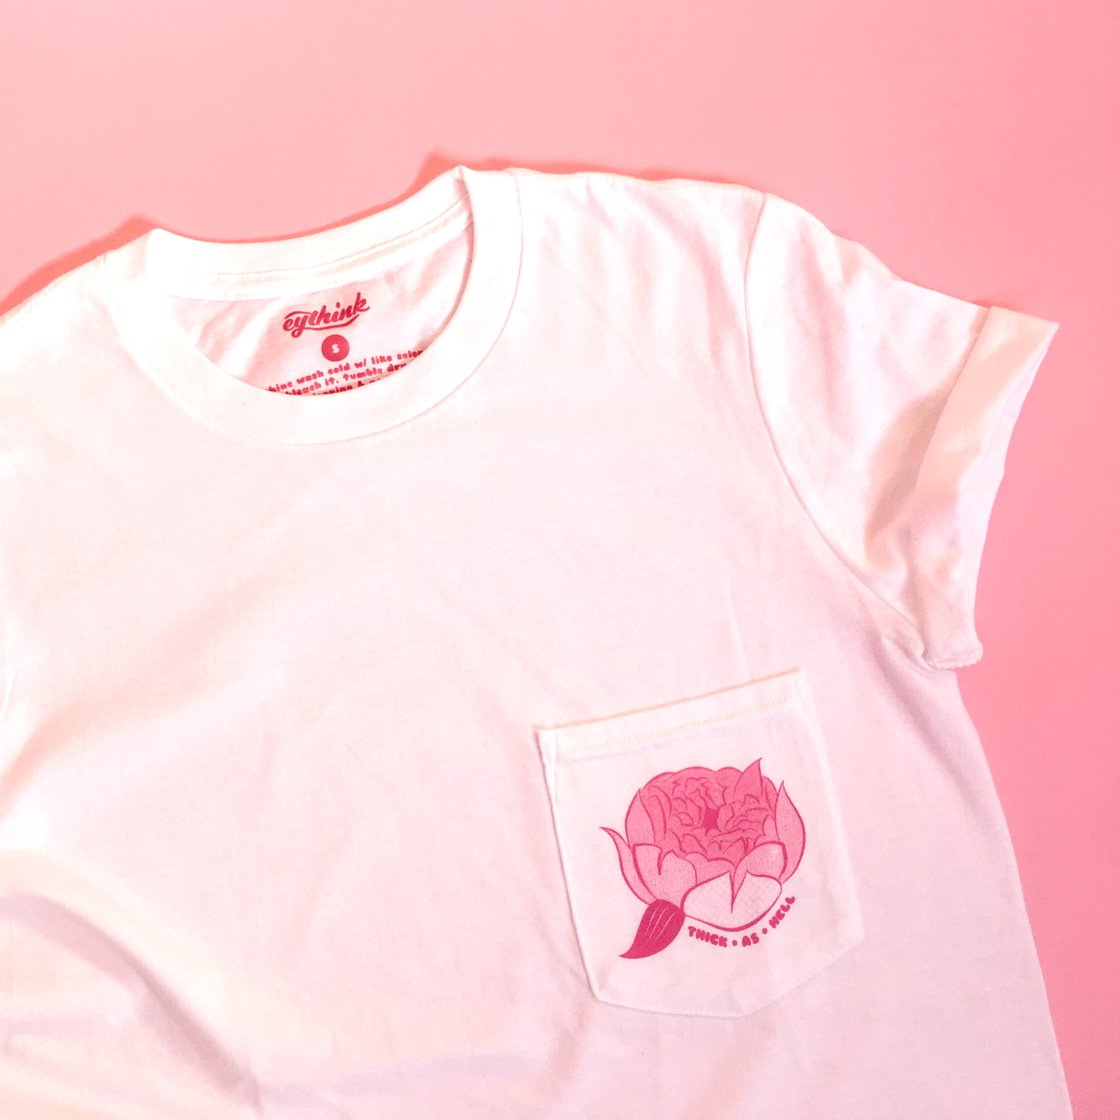 eyethink.com  / Thick as Hell Tee $36